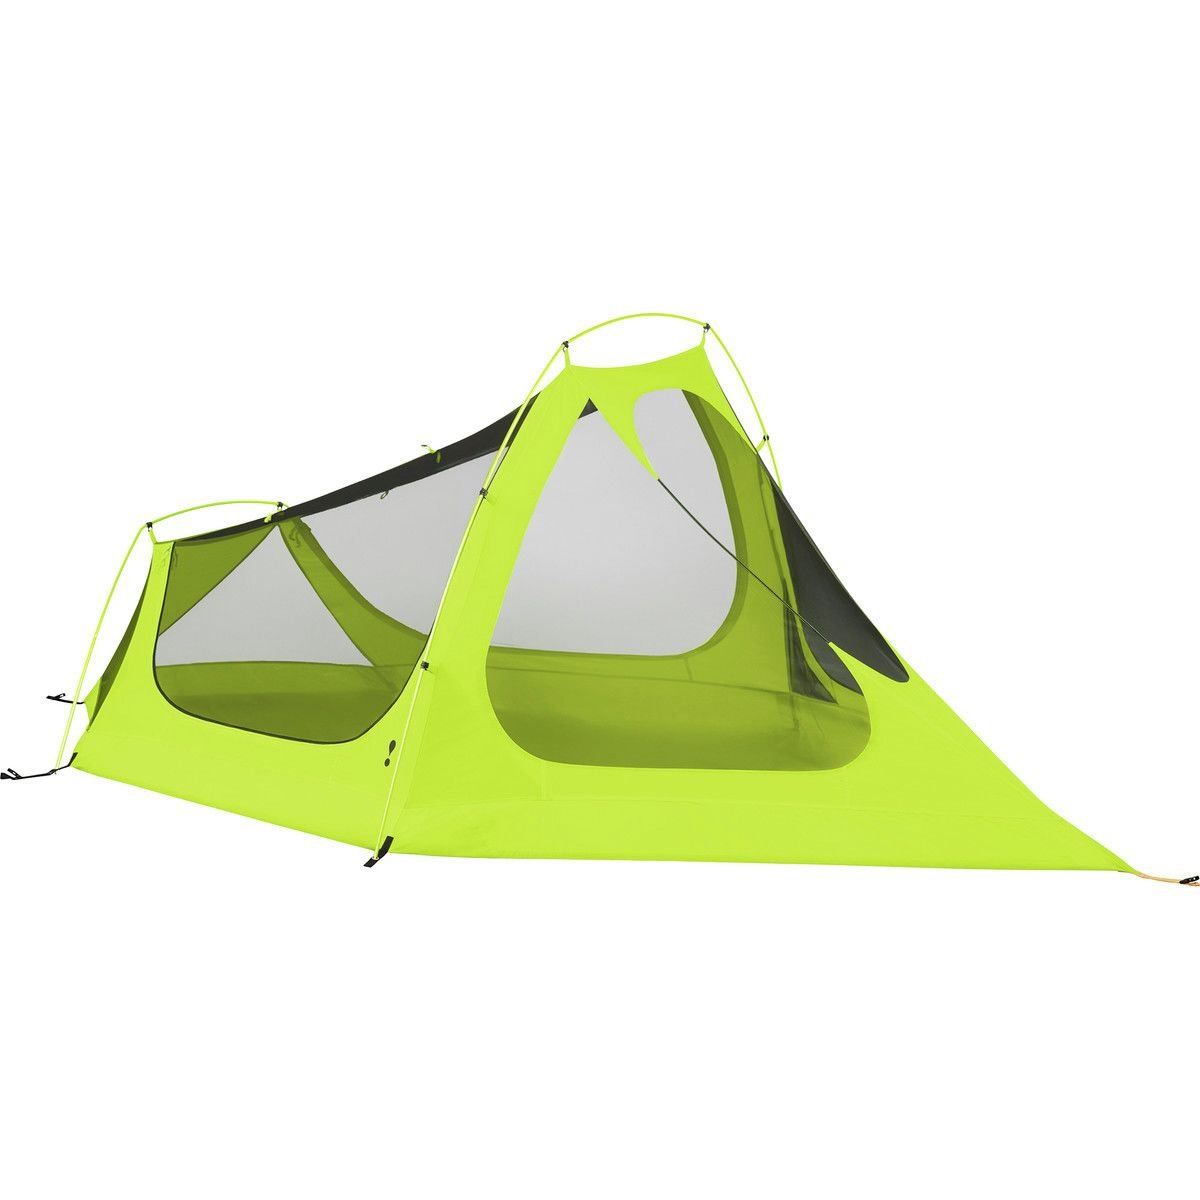 sc 1 st  Amazon.com : eureka 3 person tent - memphite.com